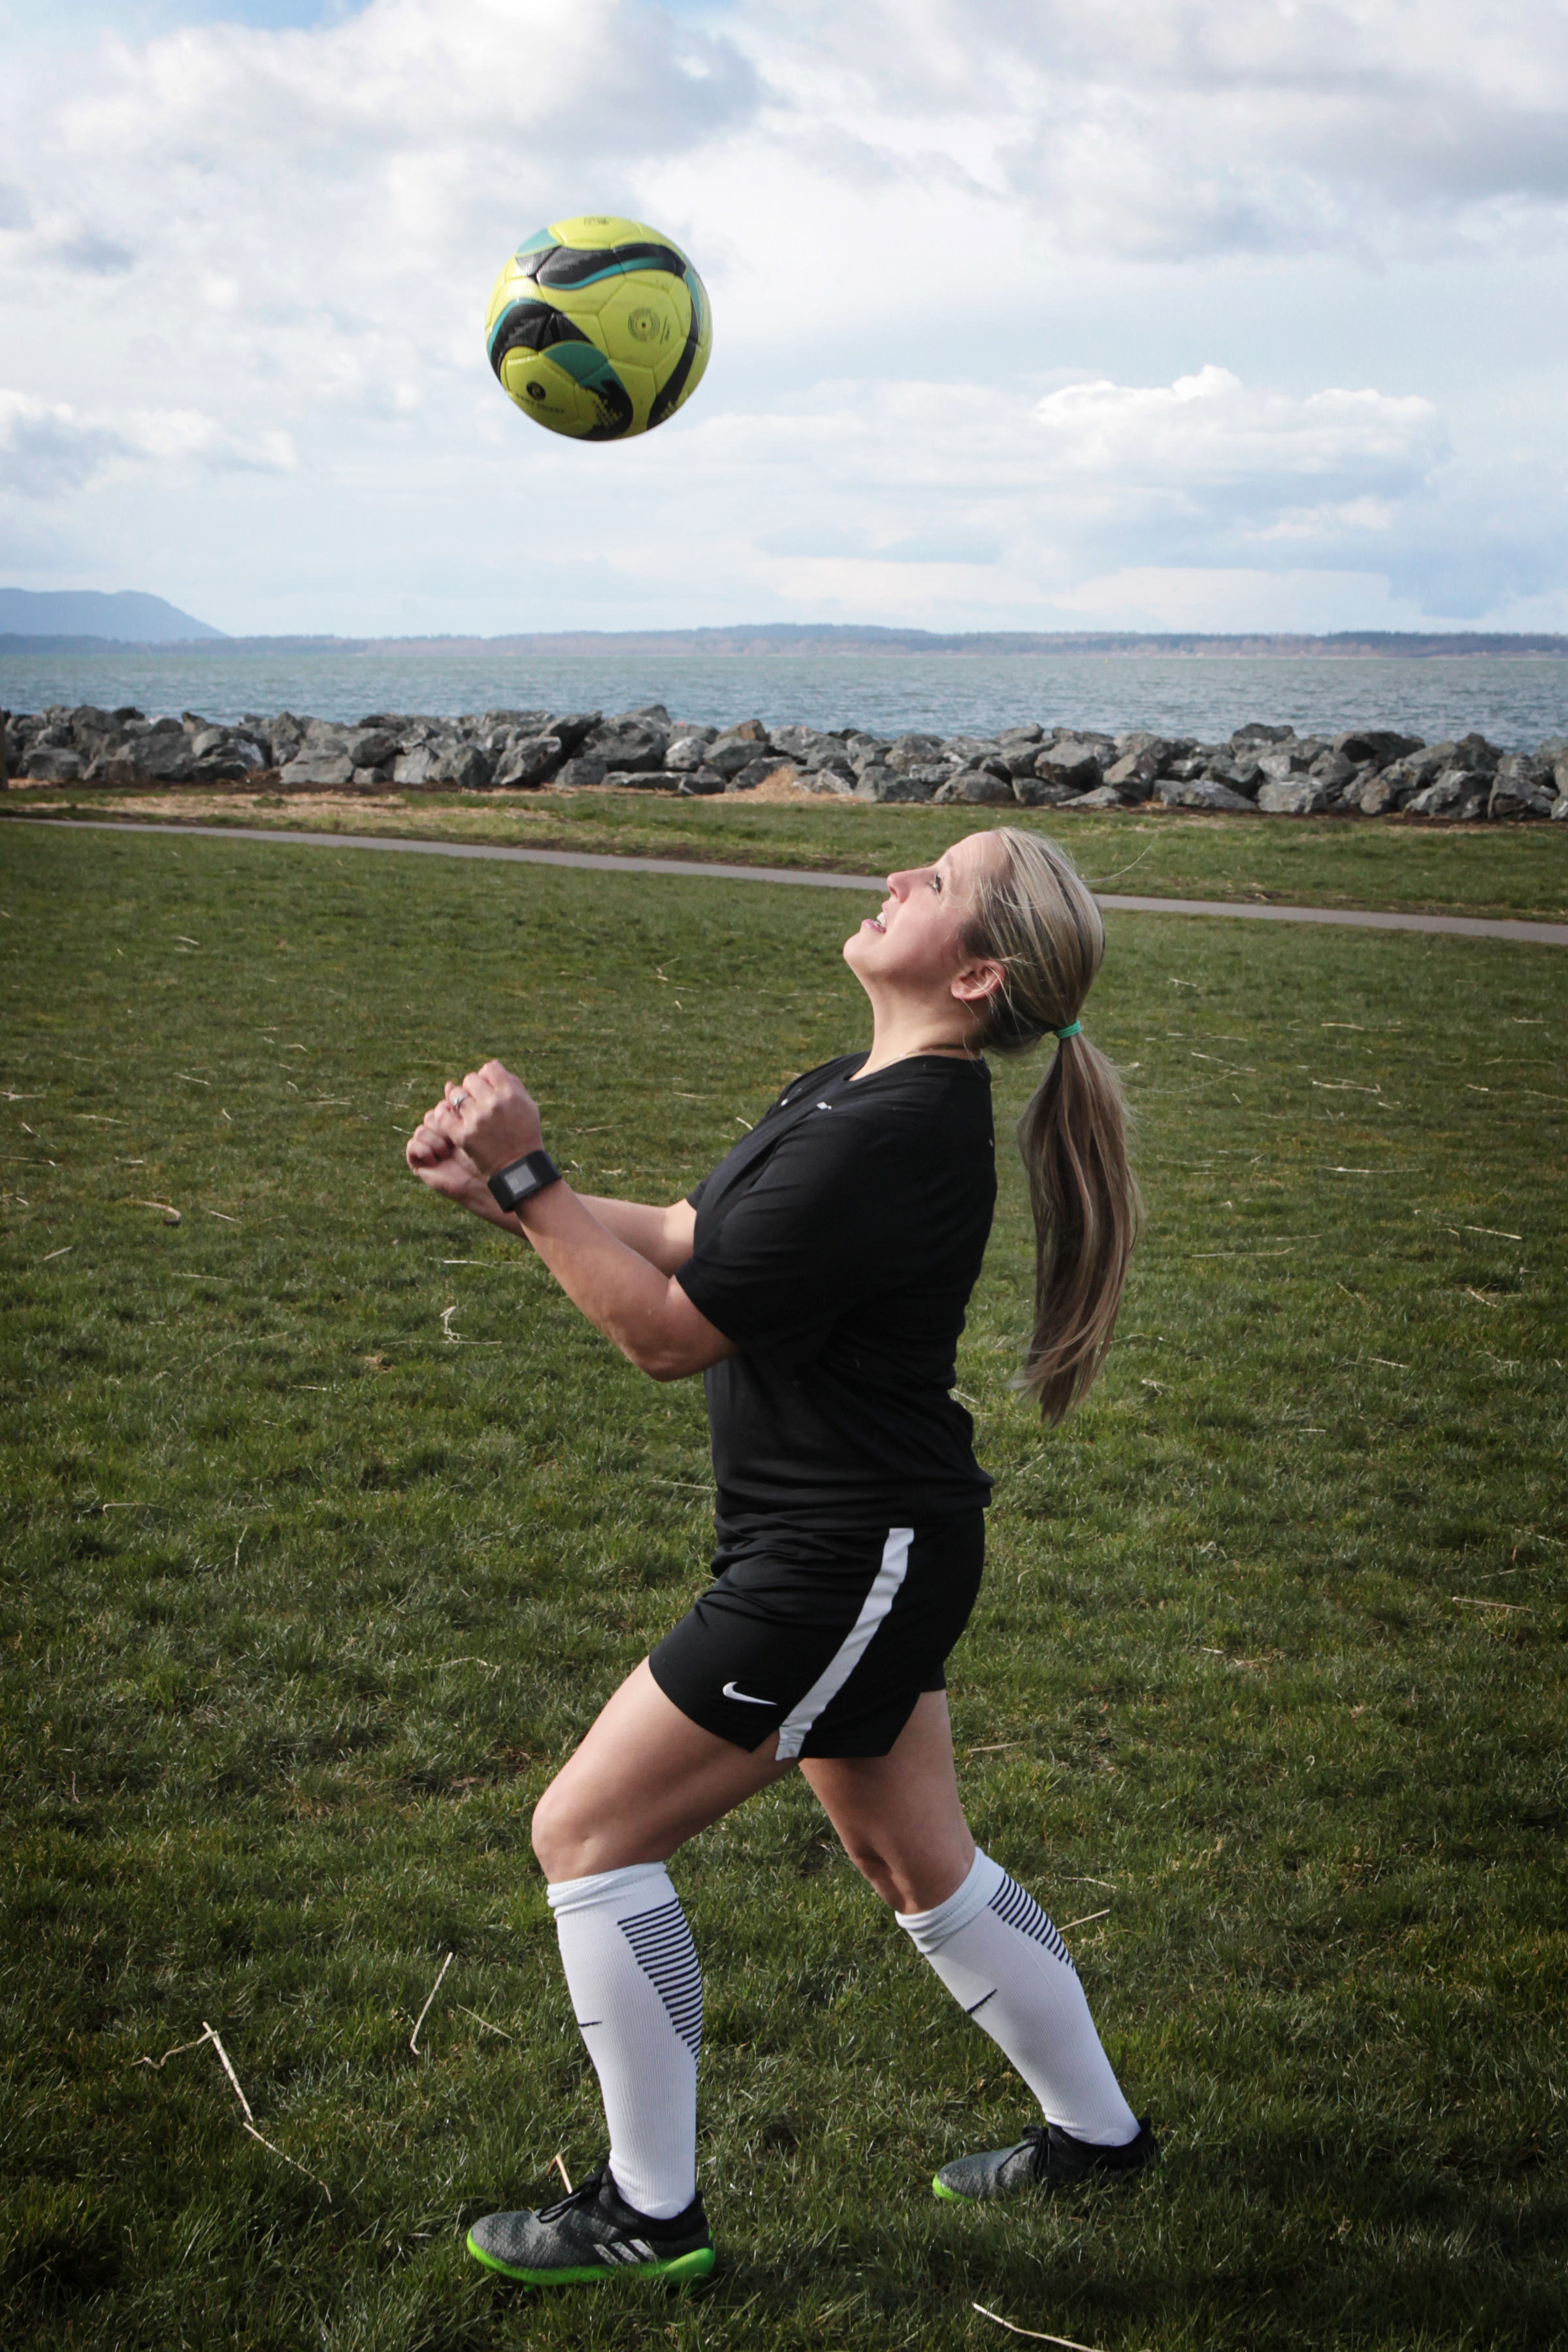 Molly Fossum with a soccer ball above her head